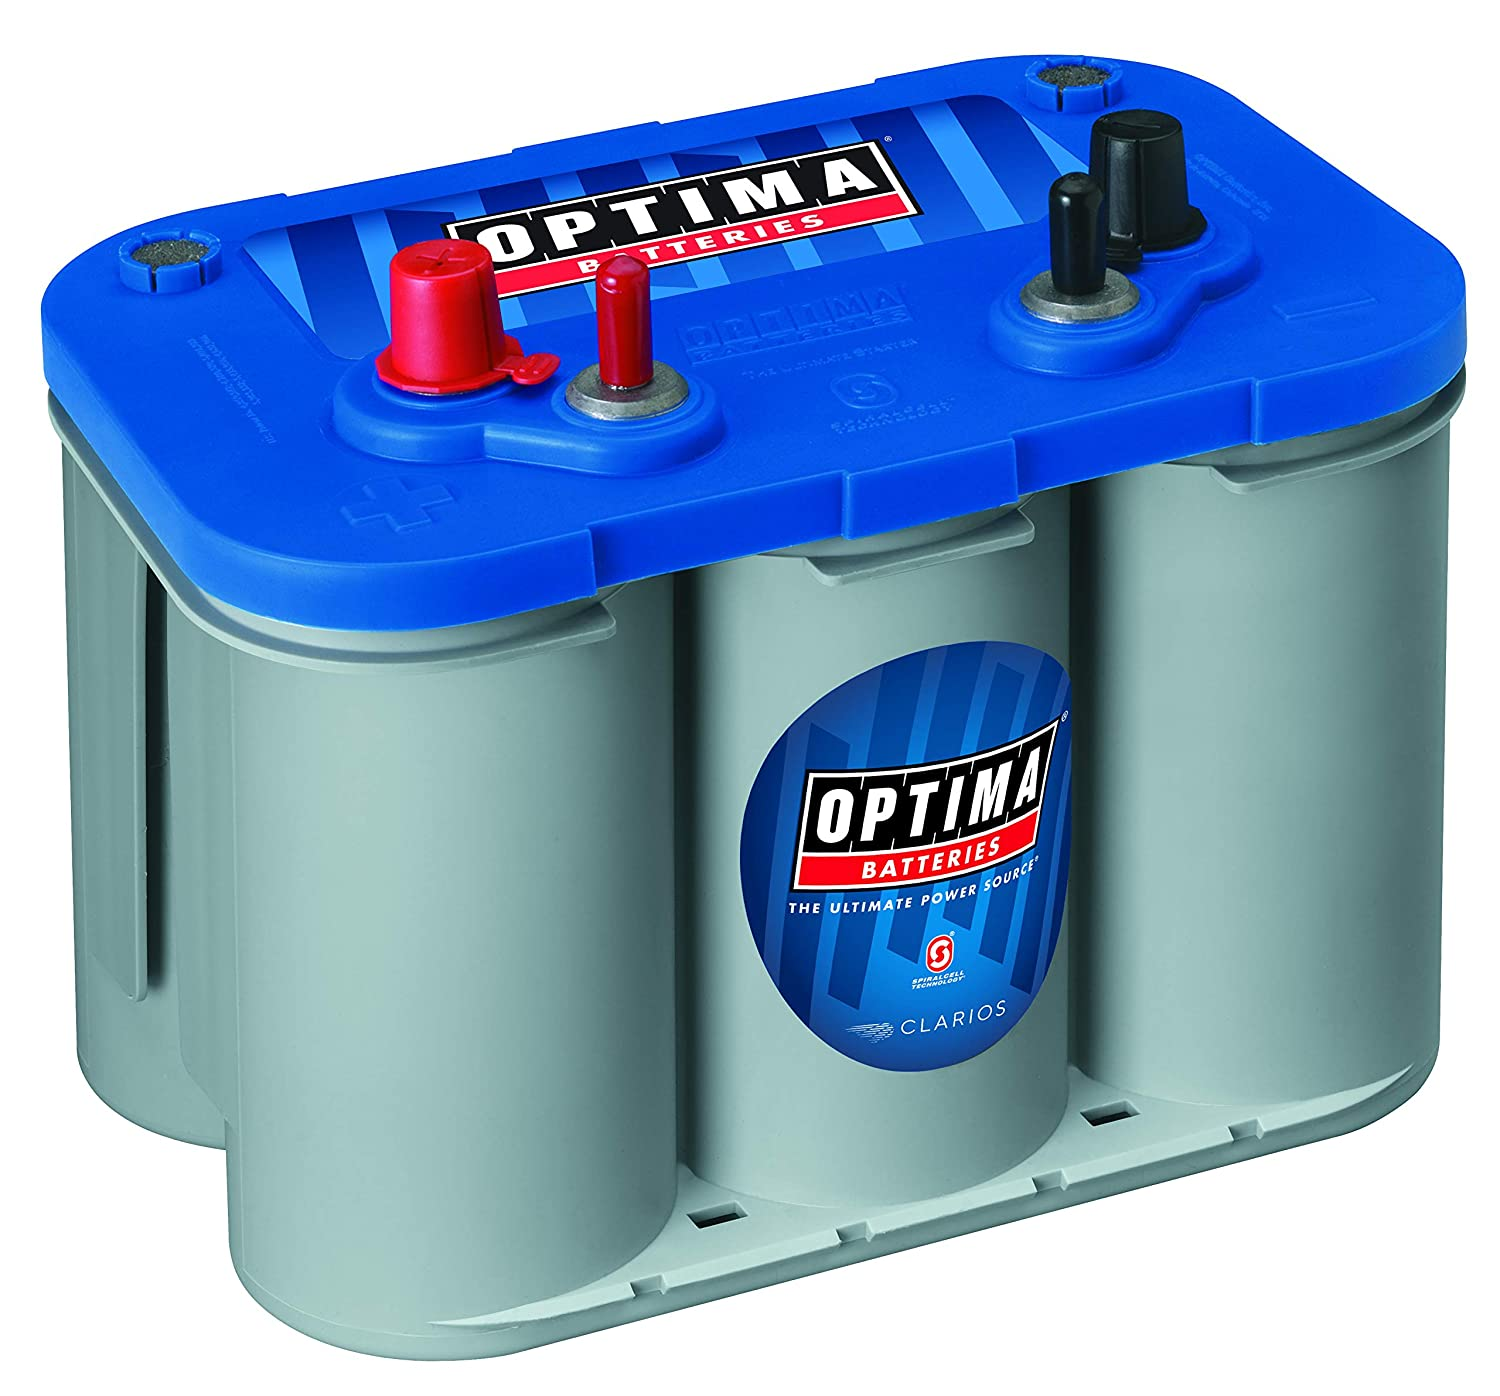 Optima Deep Cycle Blue Top Marine Battery (8016-103 D34M)